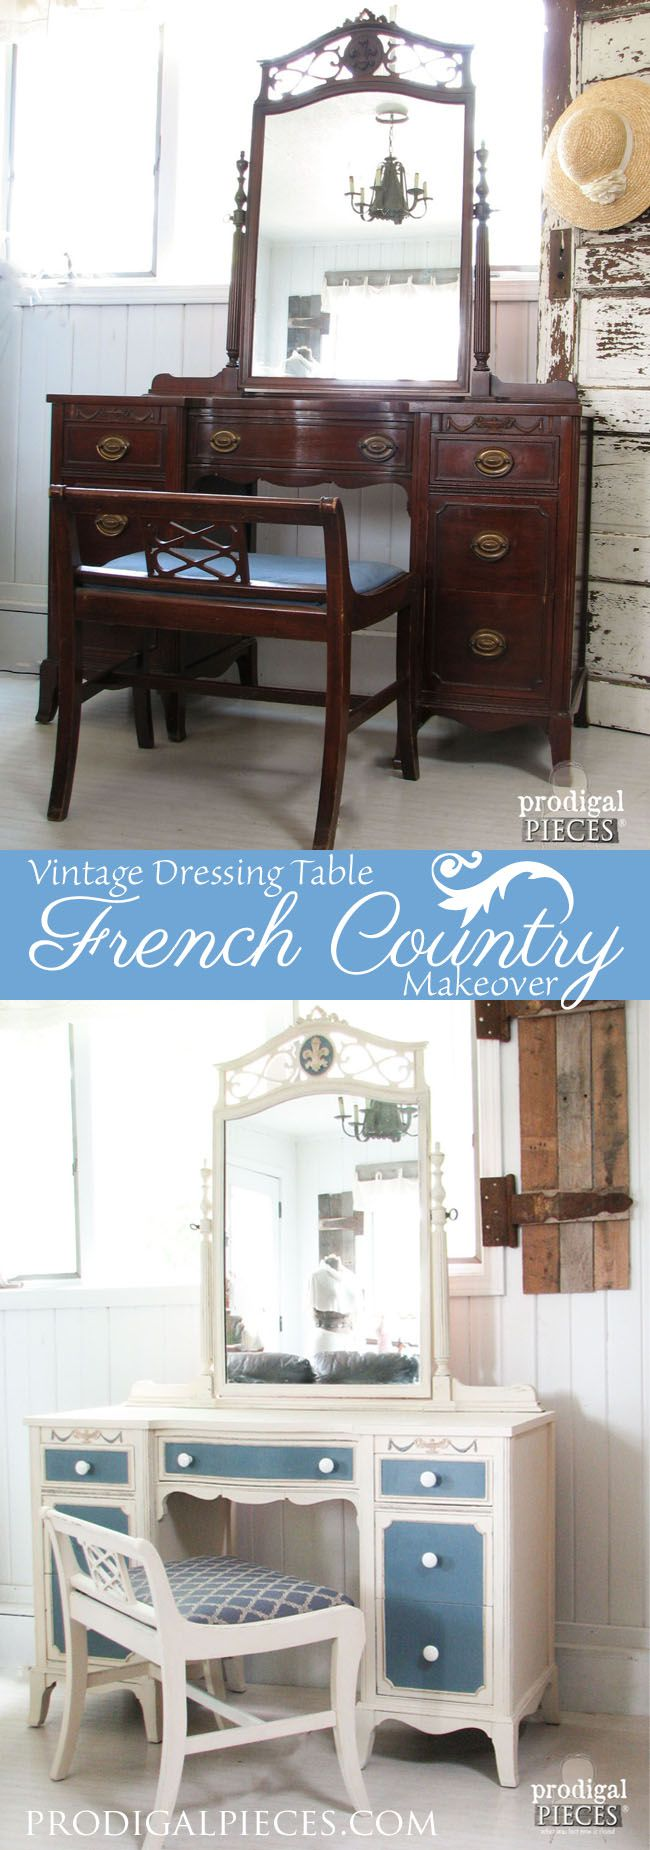 Vintage Dressing Table Gets a French Country Makeover by Prodigal Pieces www.prodigalpieces.com #prodigalpieces